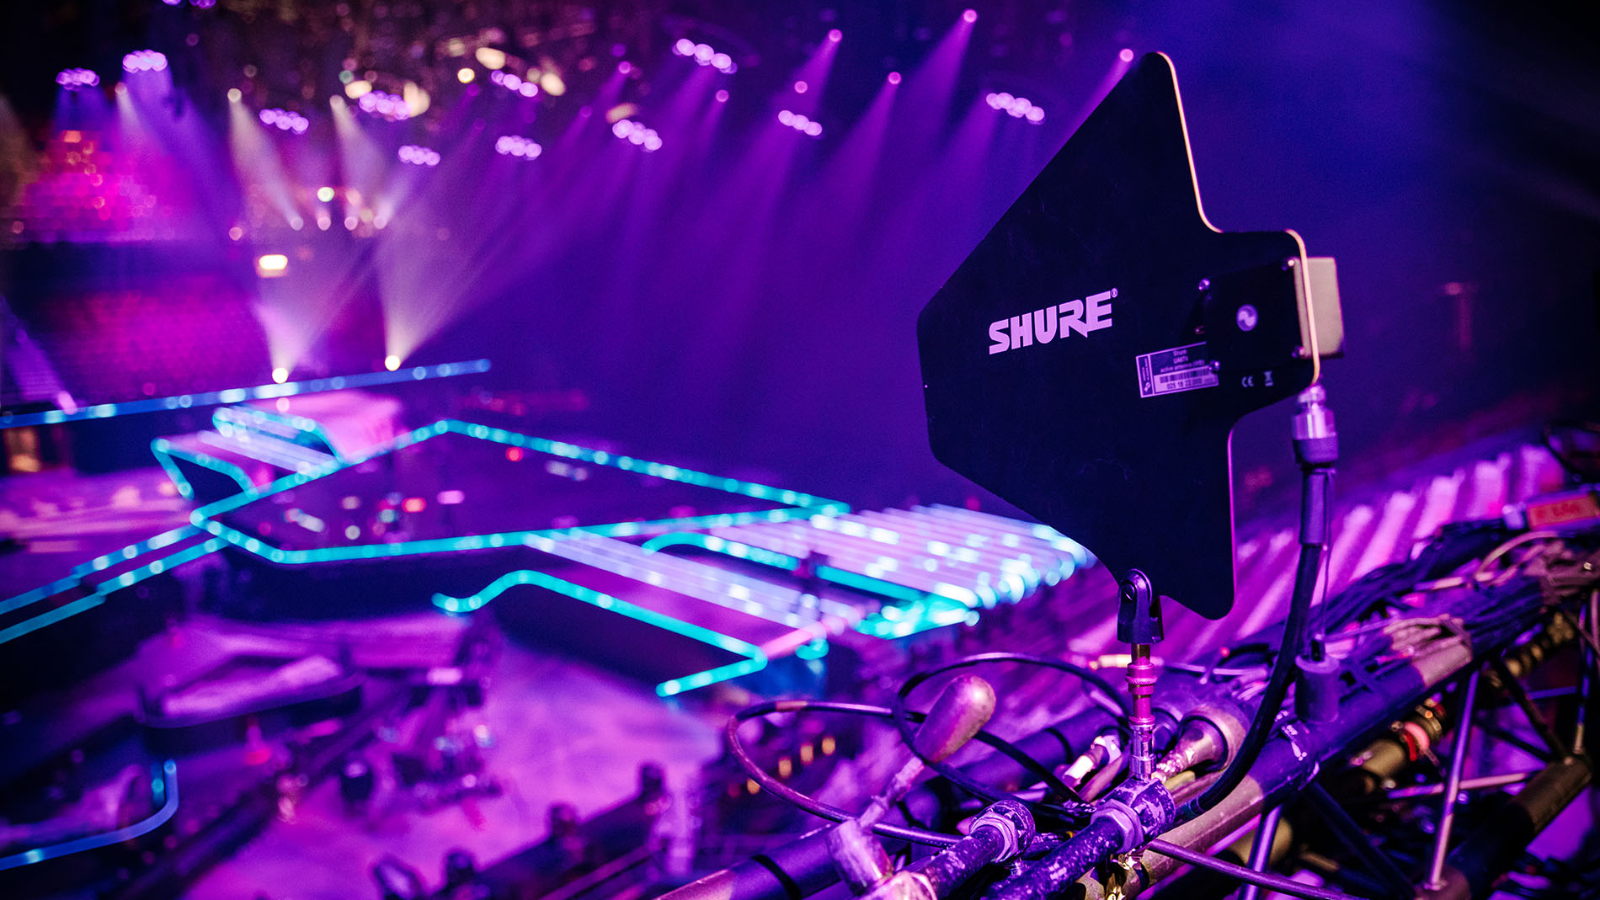 Shure Powers Eurovision Song Contest 2021 with Axient™ Digital Wireless System